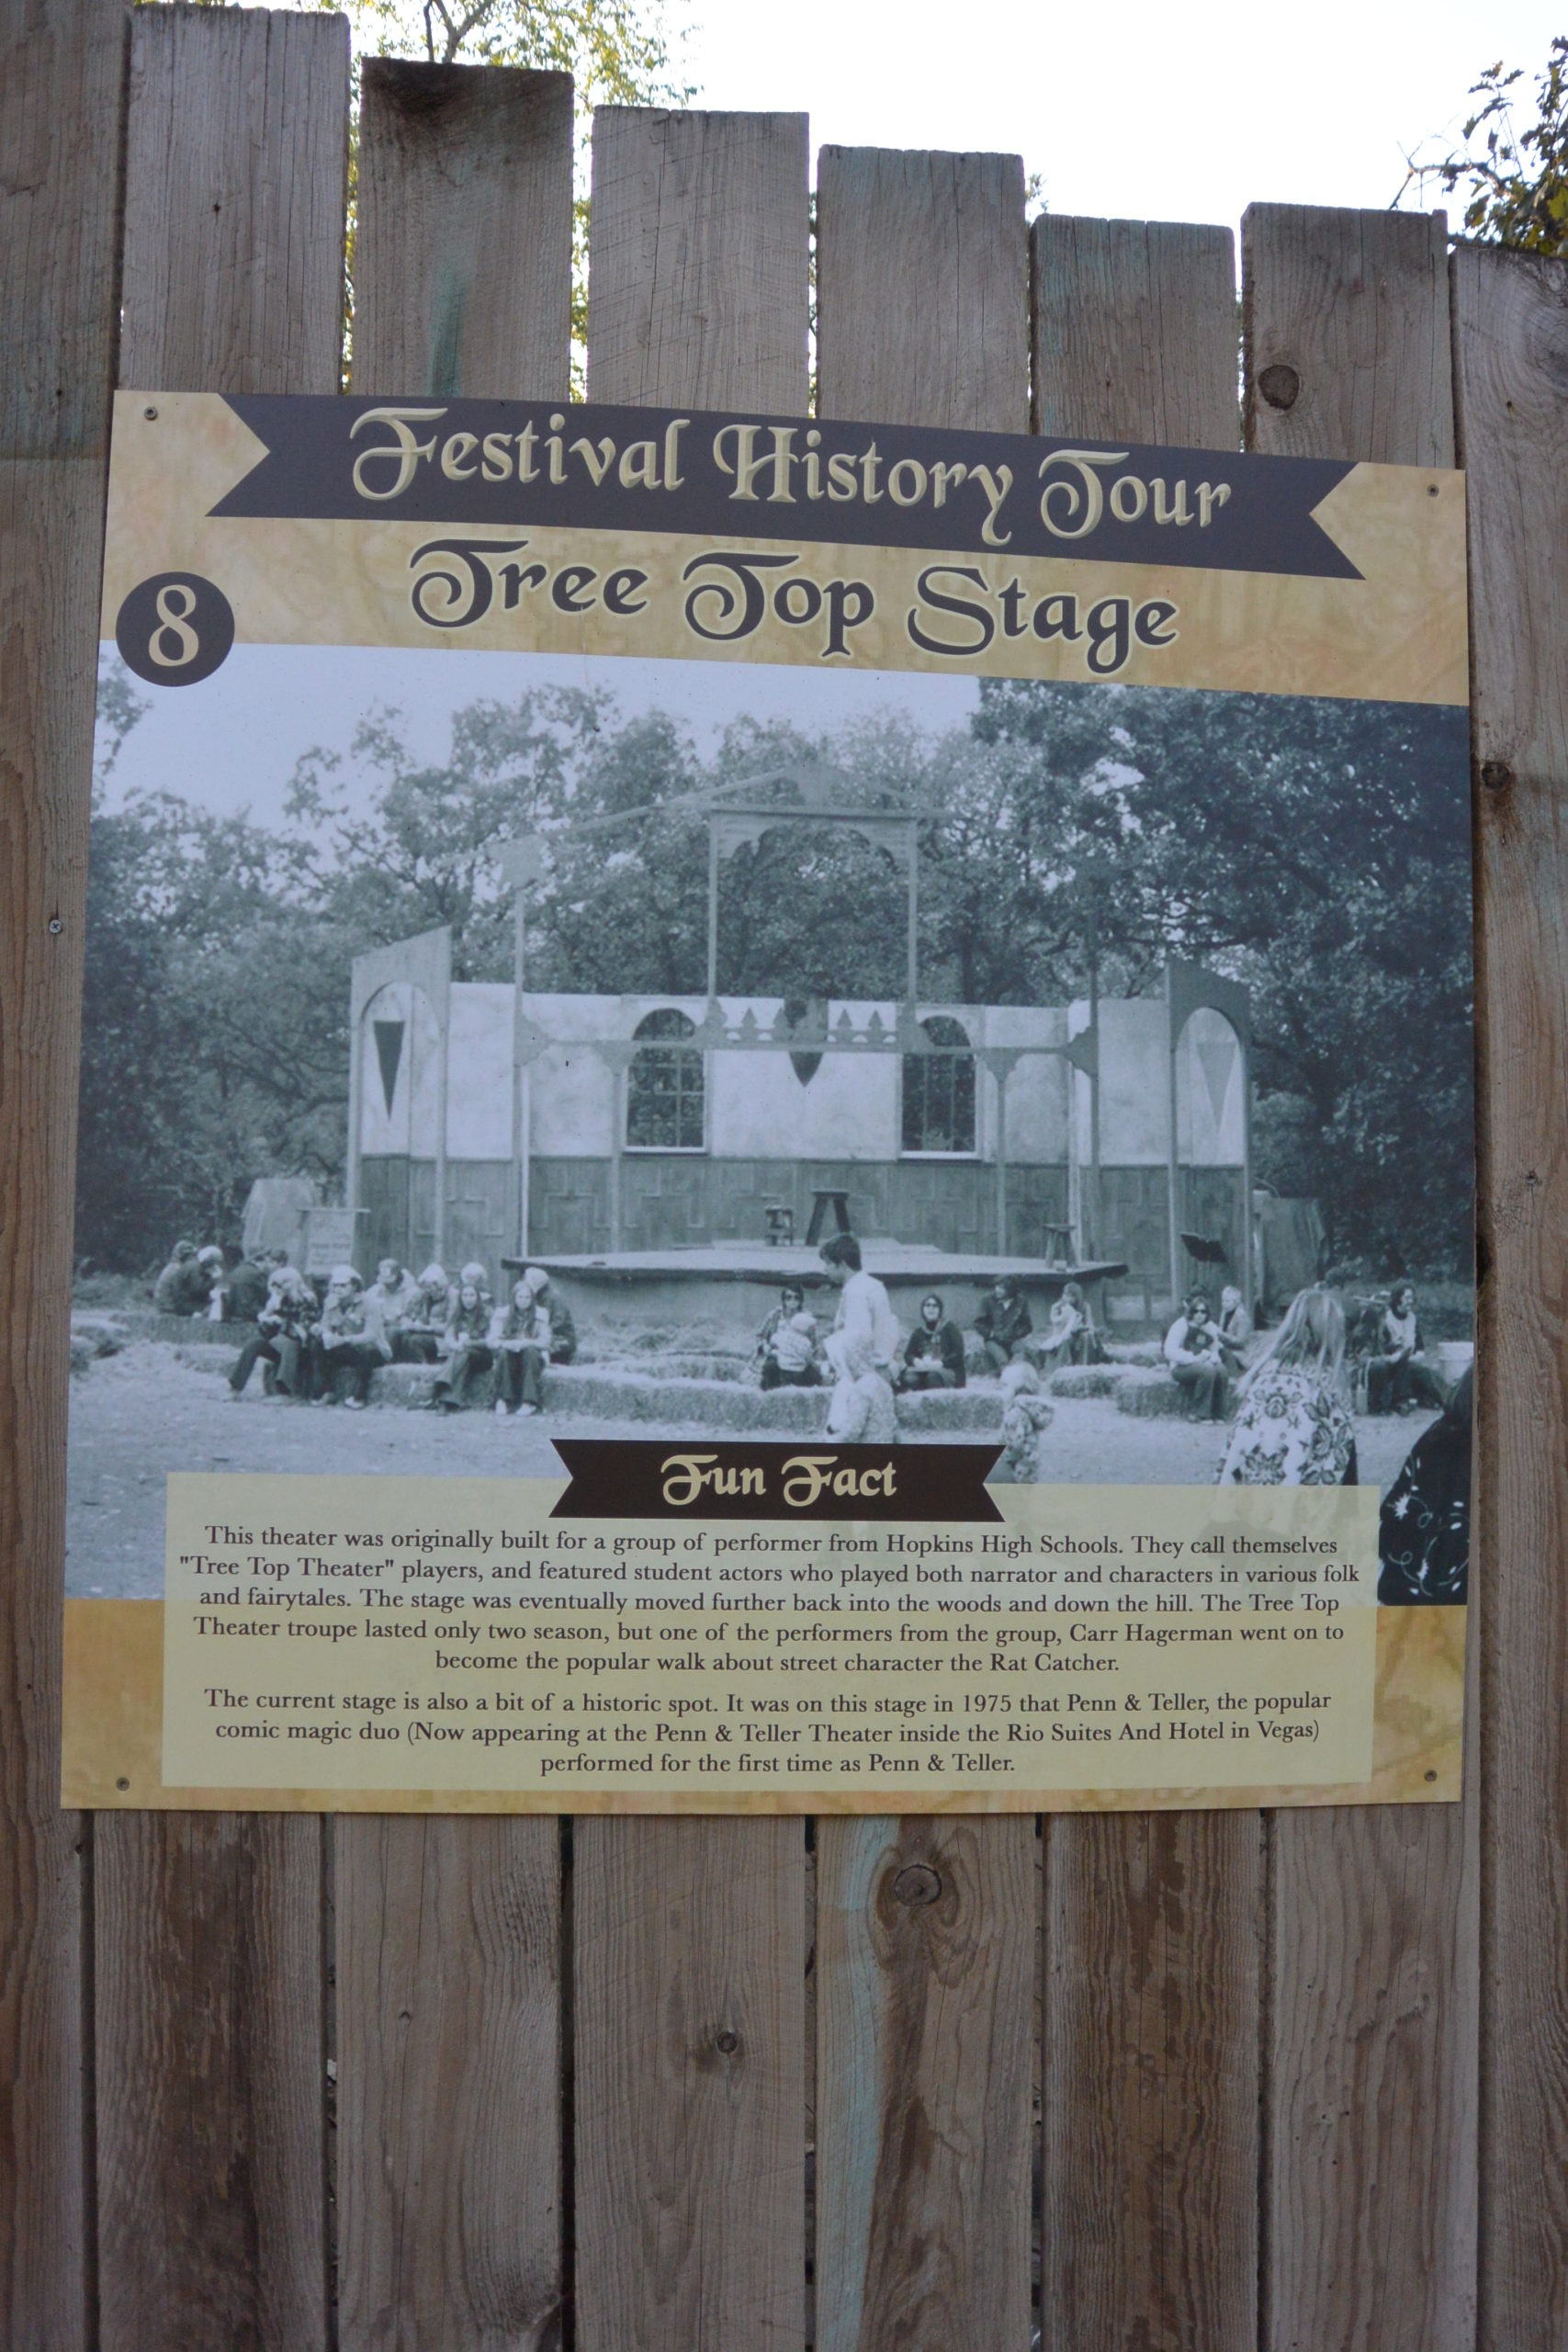 Festival History Tour: Tree Top Stage